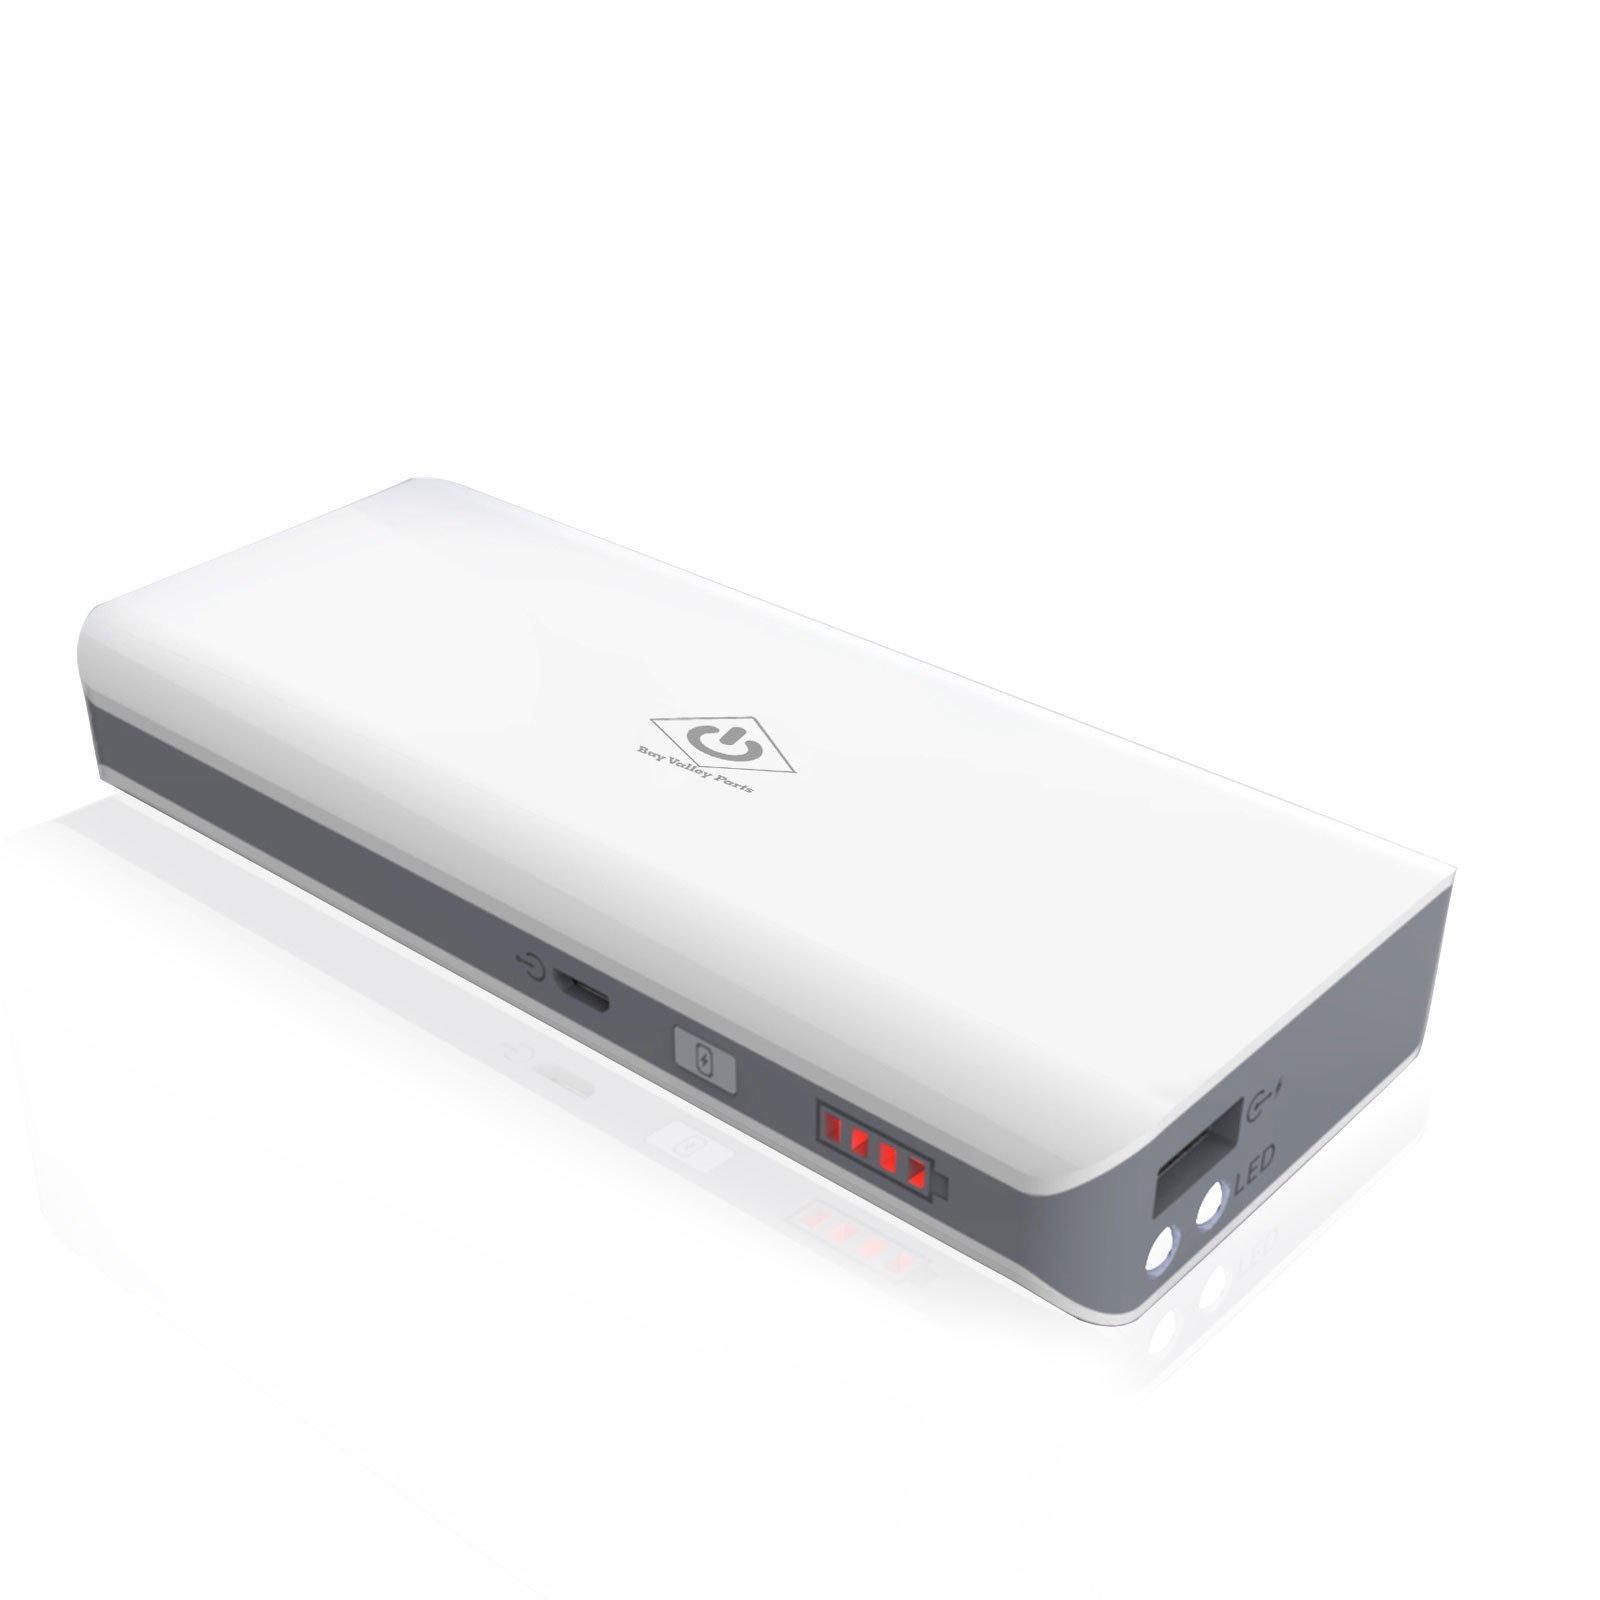 [Most Compact 10000mAh Portable Charger] Bay Valley PartsUltra High Capacity Power Bank with Most Powerful 2.1A Output for Galaxy Tab 3 2 iPhone 5 5S 4 iPod iPad Media Players Digital Camera(White)